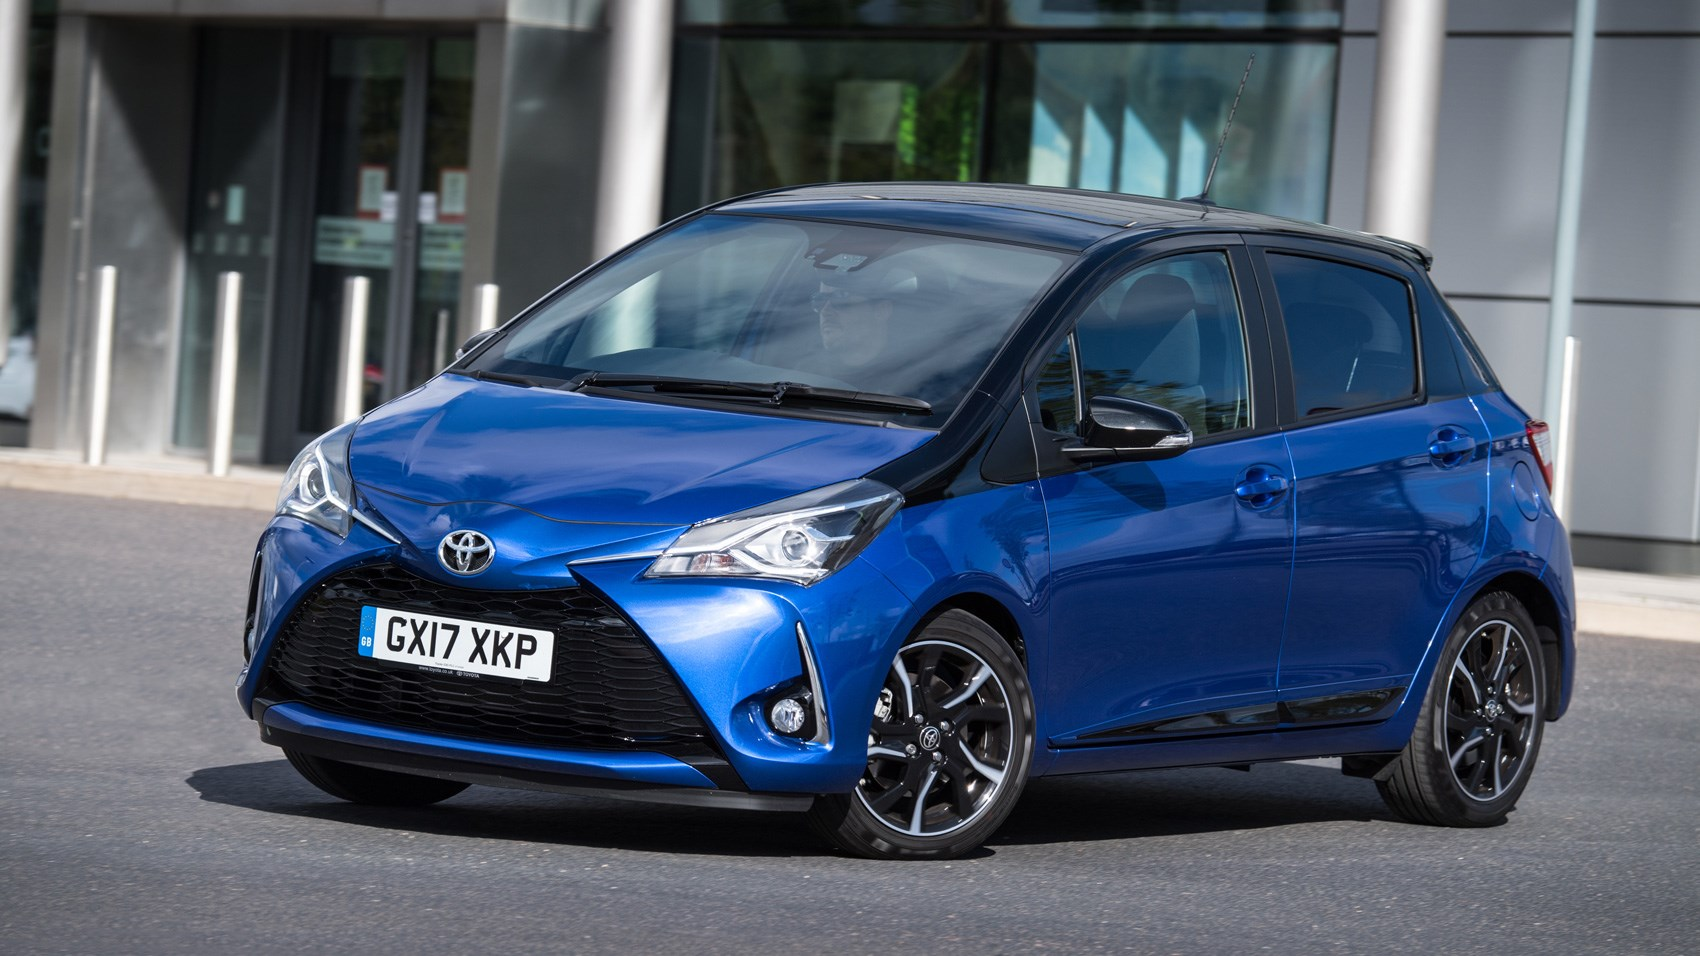 toyota yaris facelift 2017 review car magazine. Black Bedroom Furniture Sets. Home Design Ideas